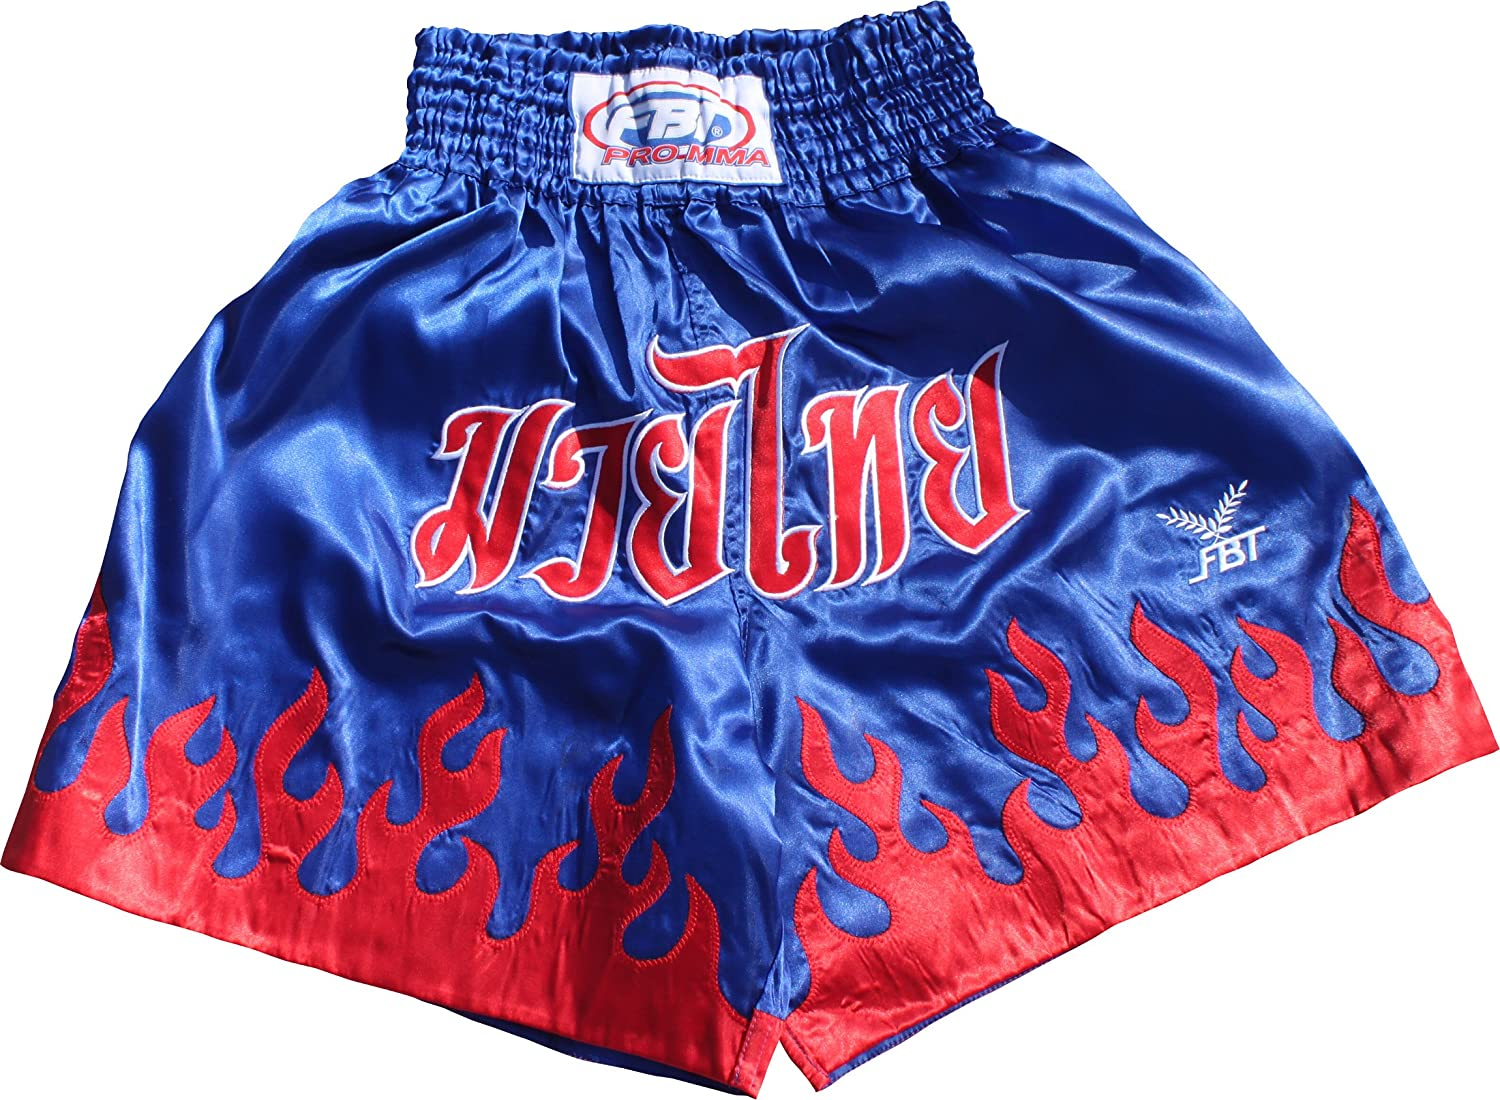 (Large, Red blueee) - Fbt Quality Satin Kick Boxing Shorts with Muay Thai Thailand Script and Flames